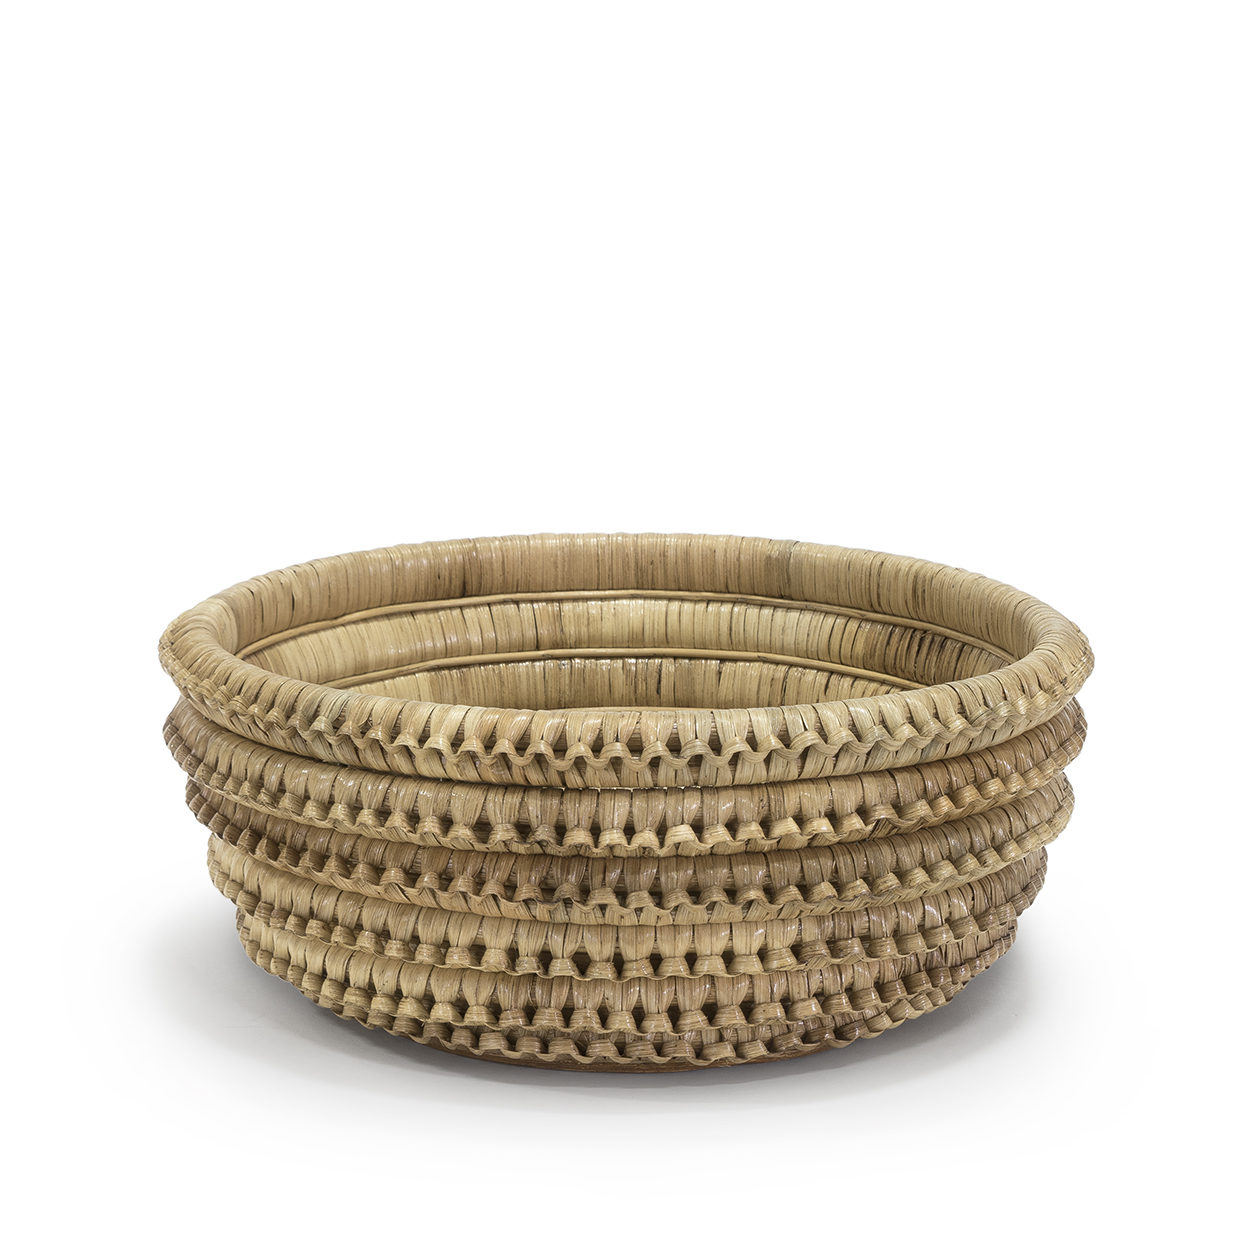 Braided Rattan Bowl   14.5d x 6h  P305901